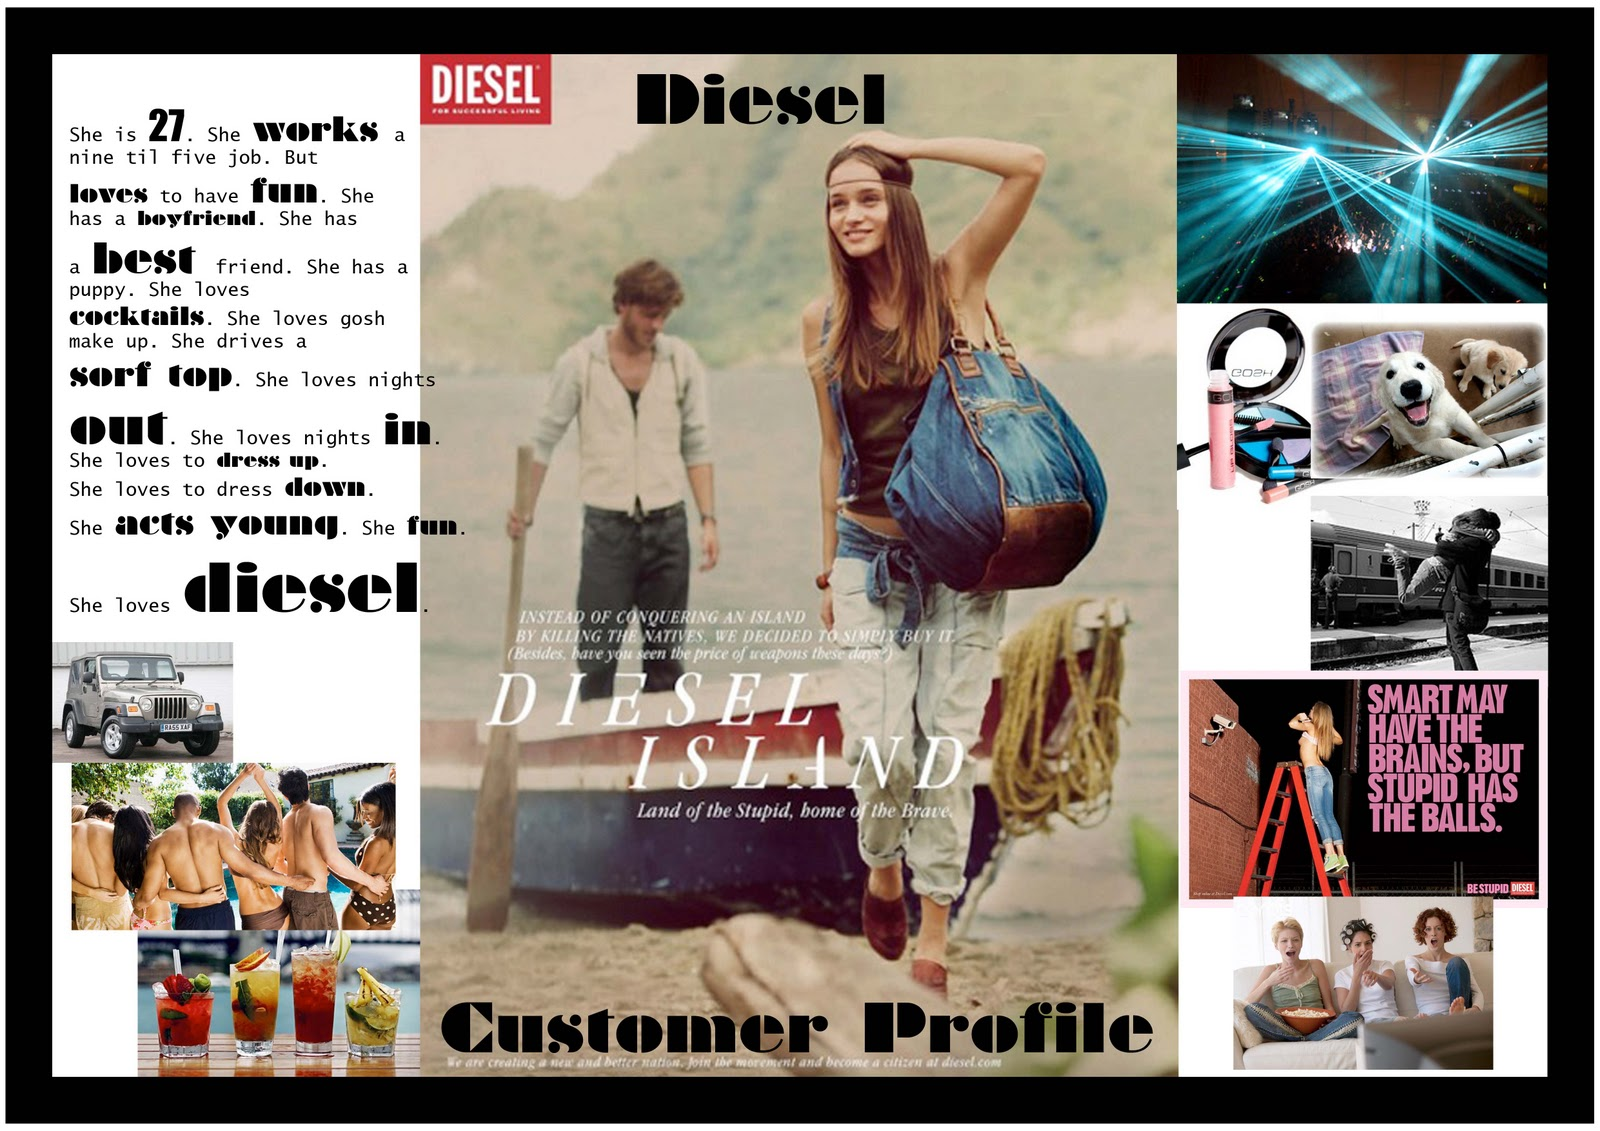 Miss Lauren: DIESEL CUSTOMER PROFILE